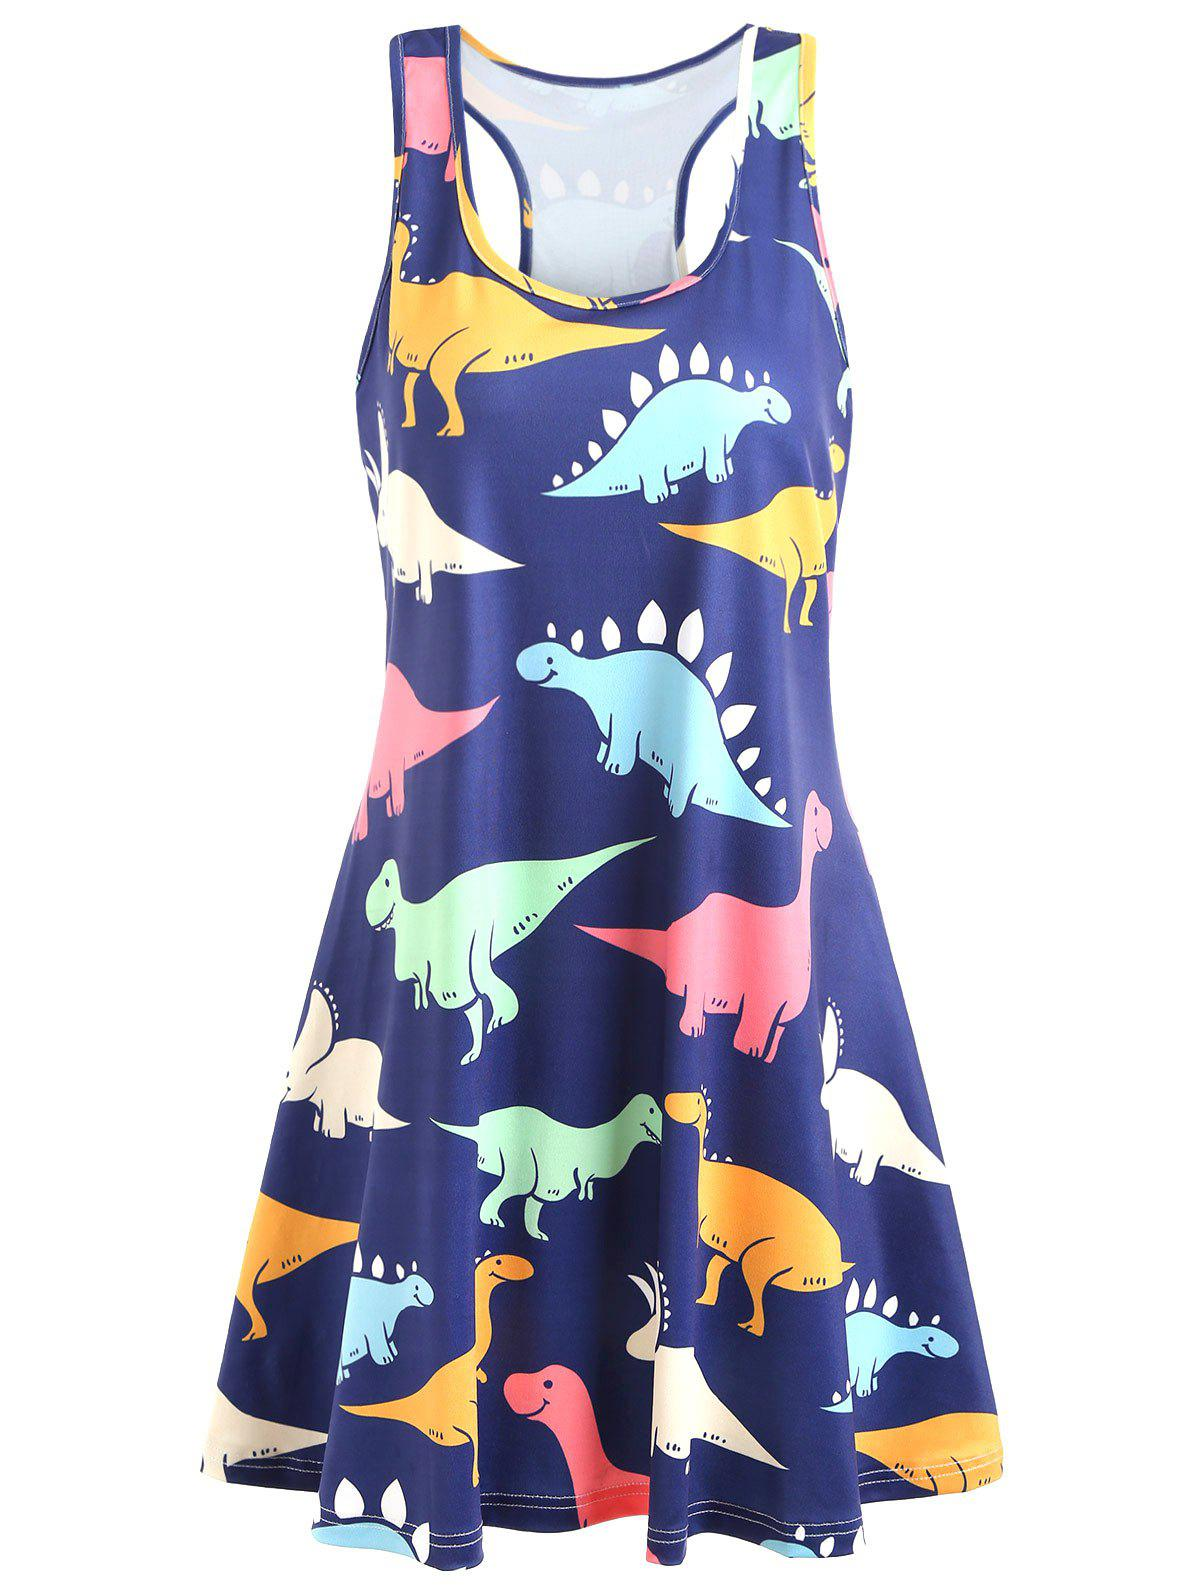 Plus Size Dinosaur Racerback Dress   2x by Rosegal